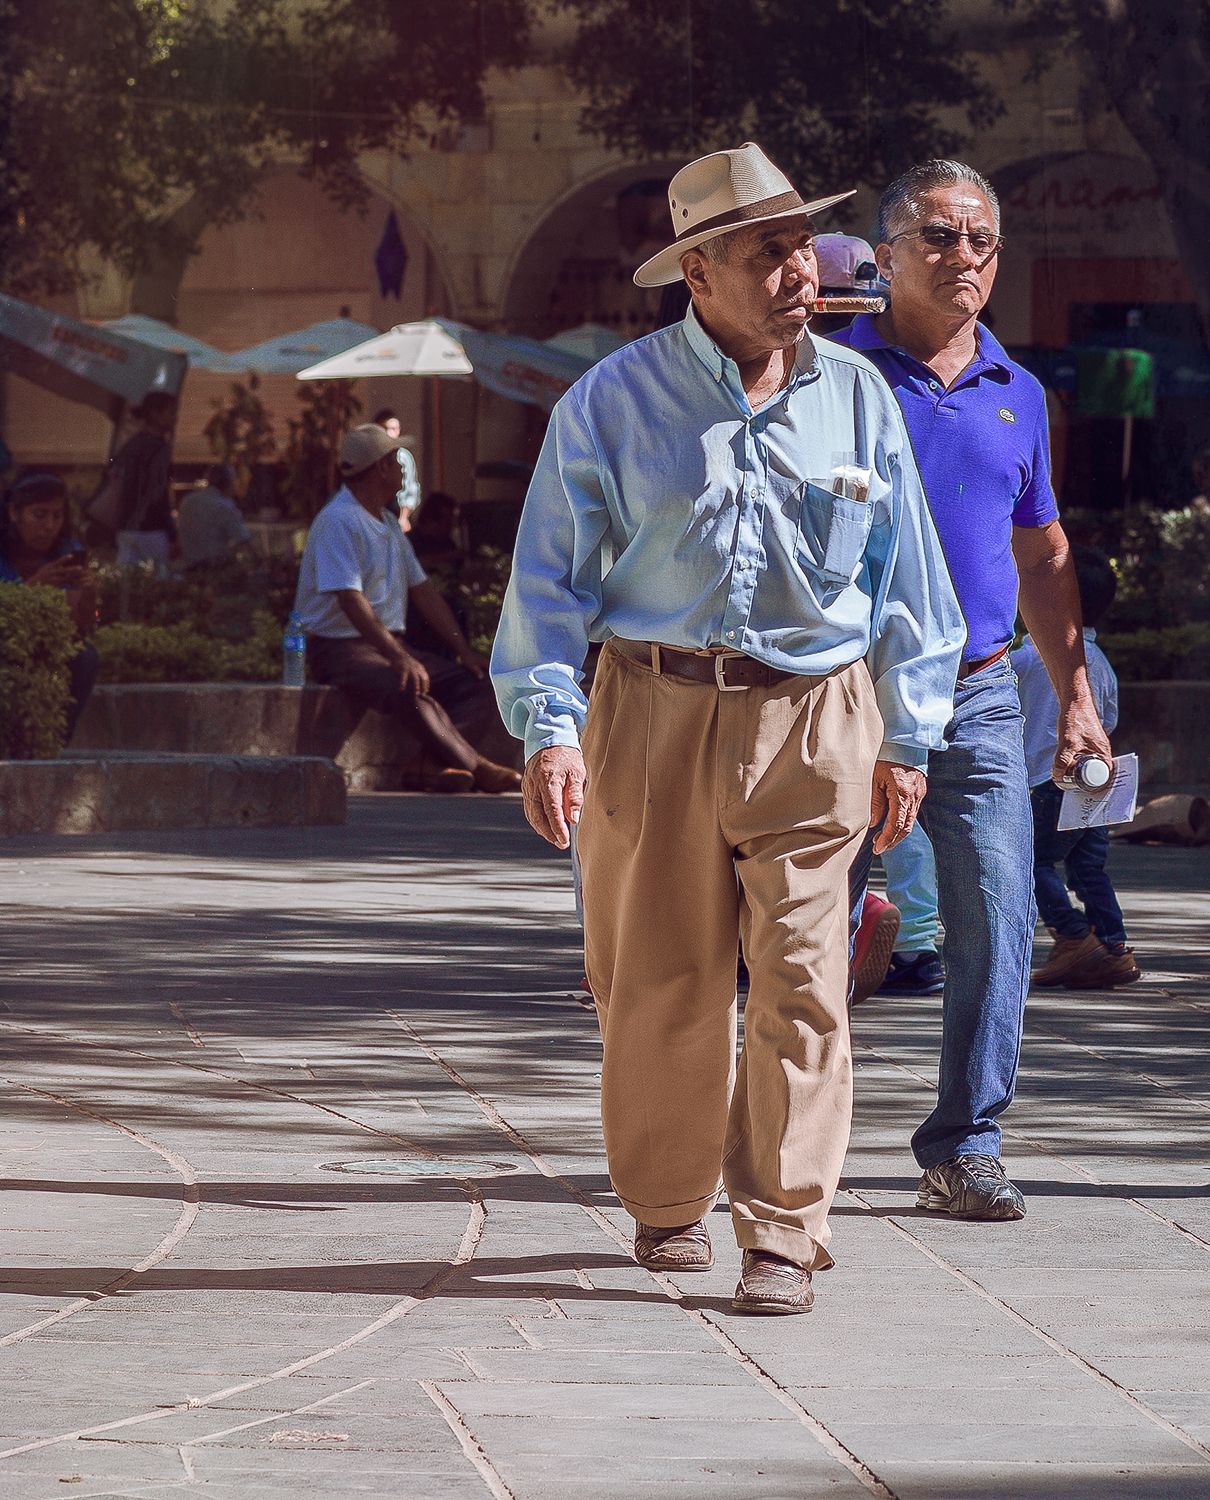 cigar-man_oaxaca_crockett_2015_4773.jpg